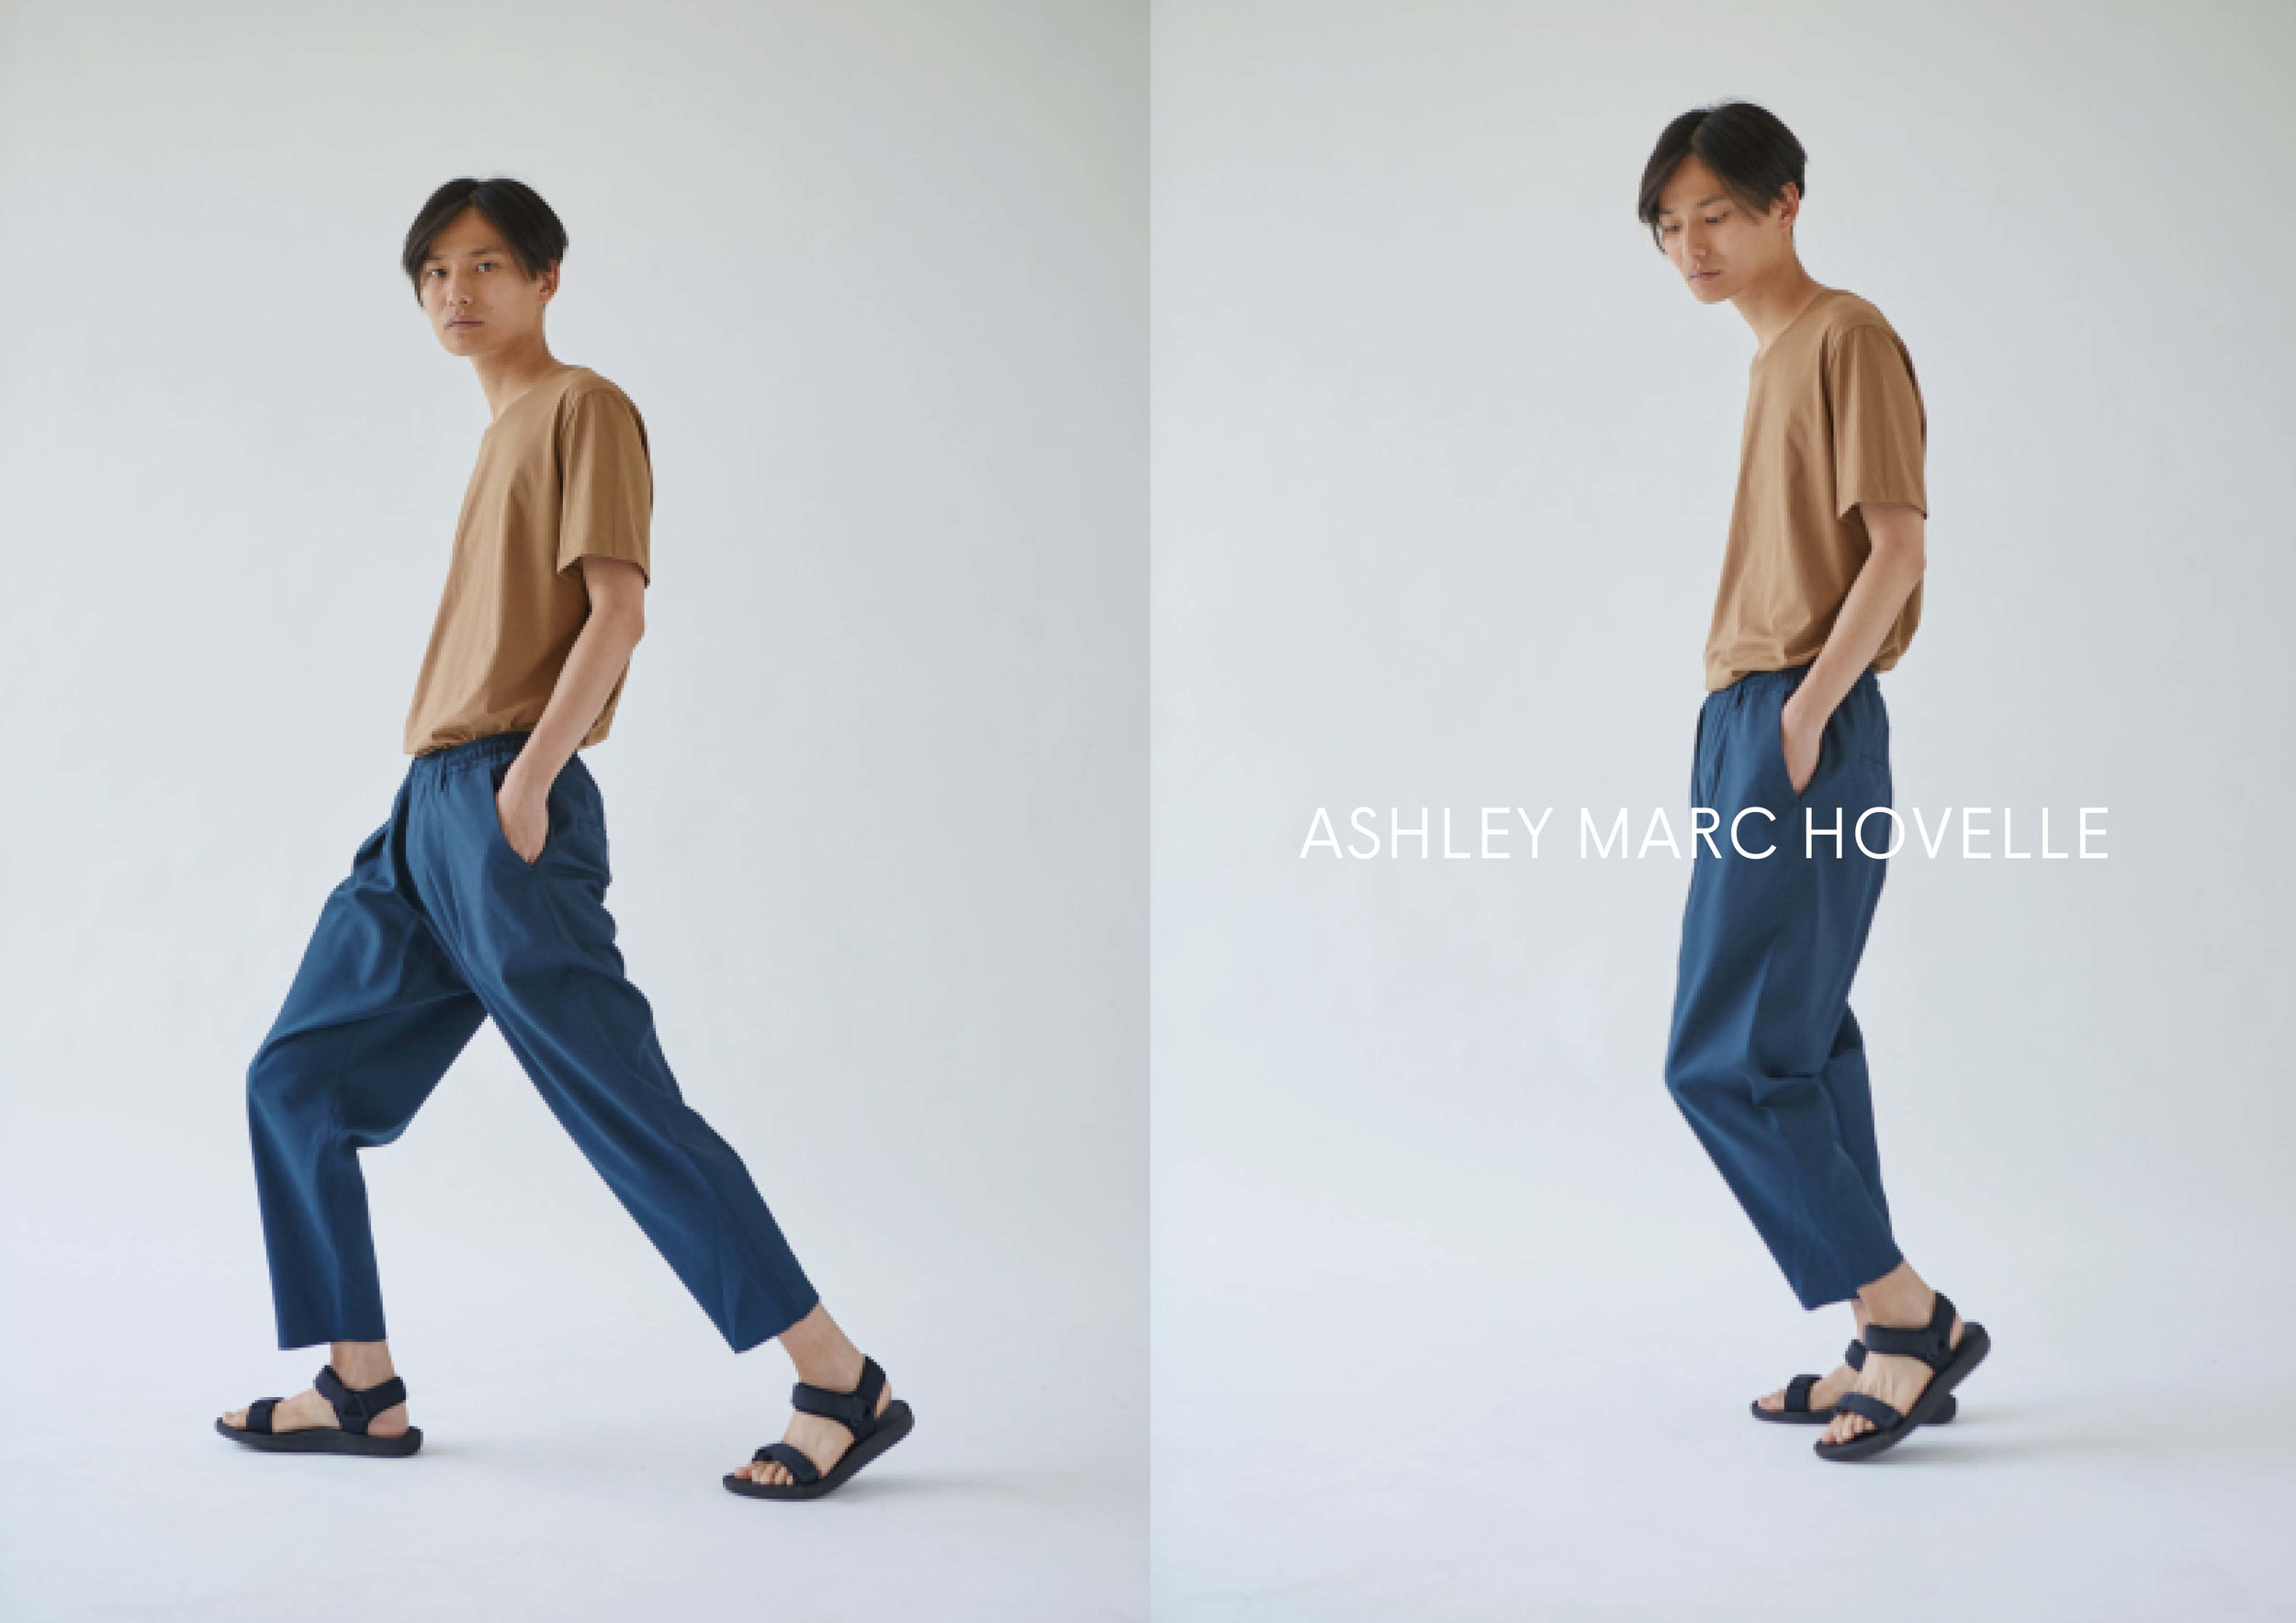 Ashley Marc Hovelle SS19 Lookbook final sml16.jpg